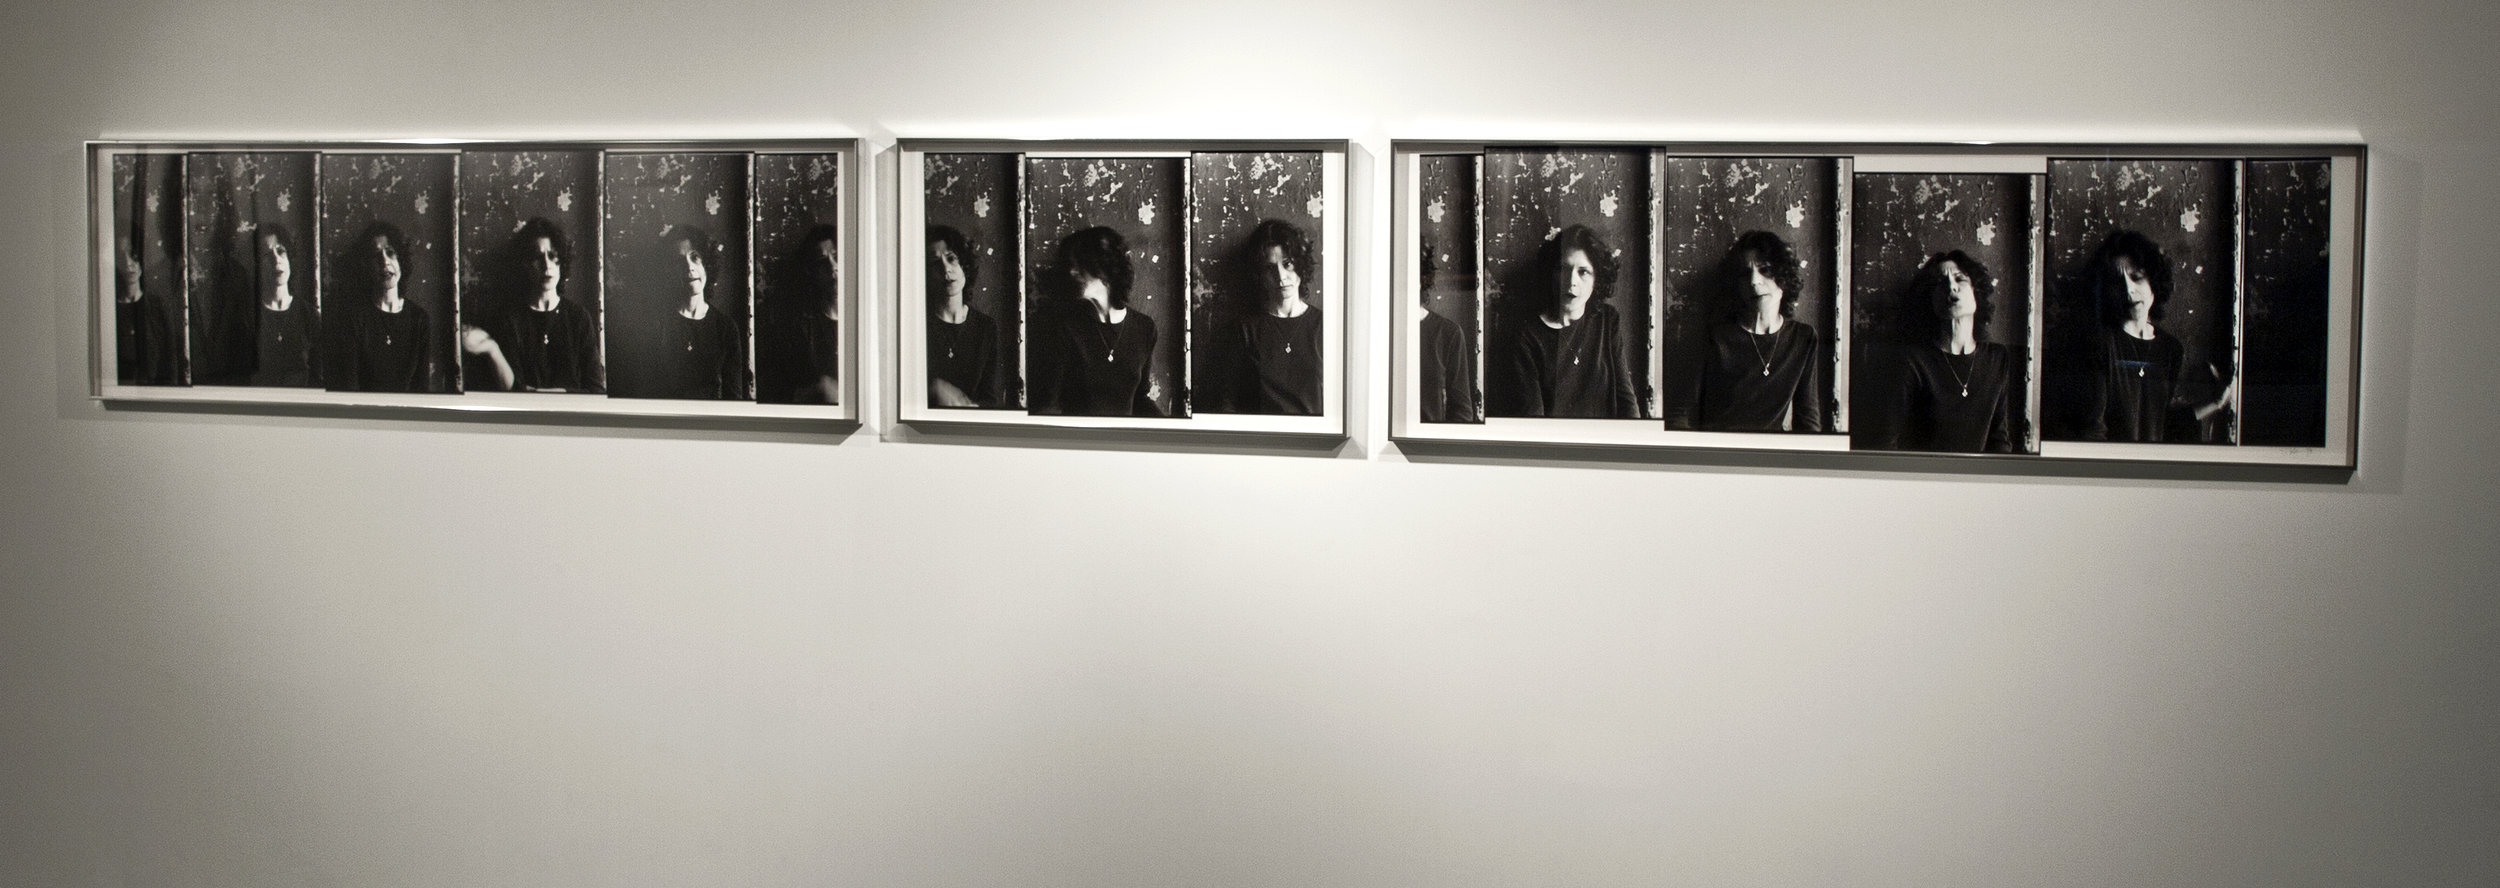 Something, Nothing Everything, 1978, sequence of 3 panels, approx. 22 x 179 inches, vintage selenium-toned silver gelatin montage